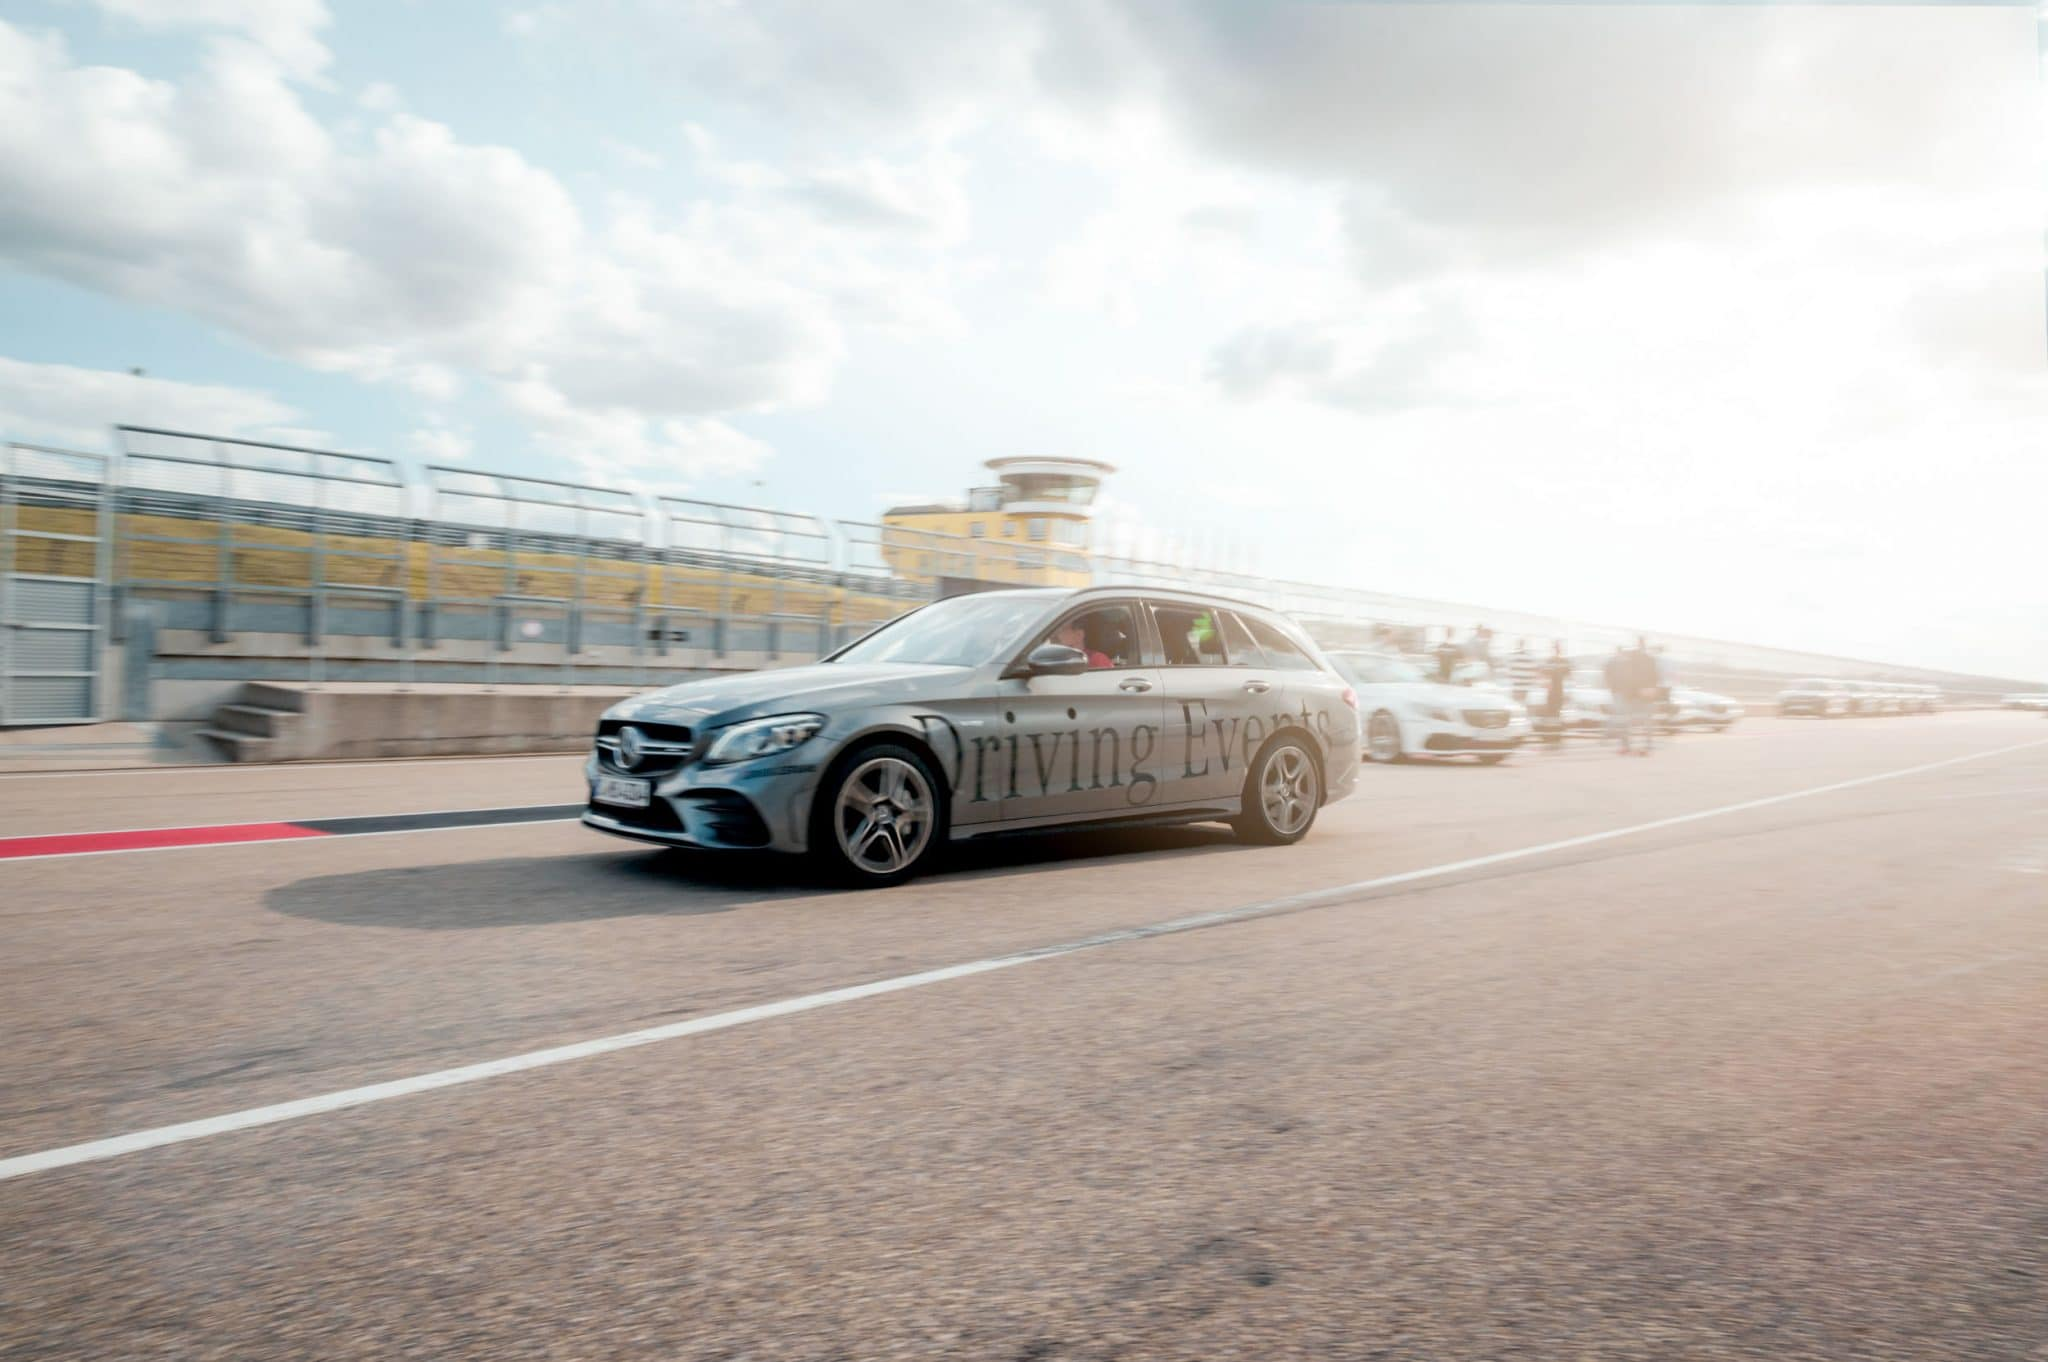 Mercedes Benz Driving Events Sachsenring 11. September 2020 462 scaled |